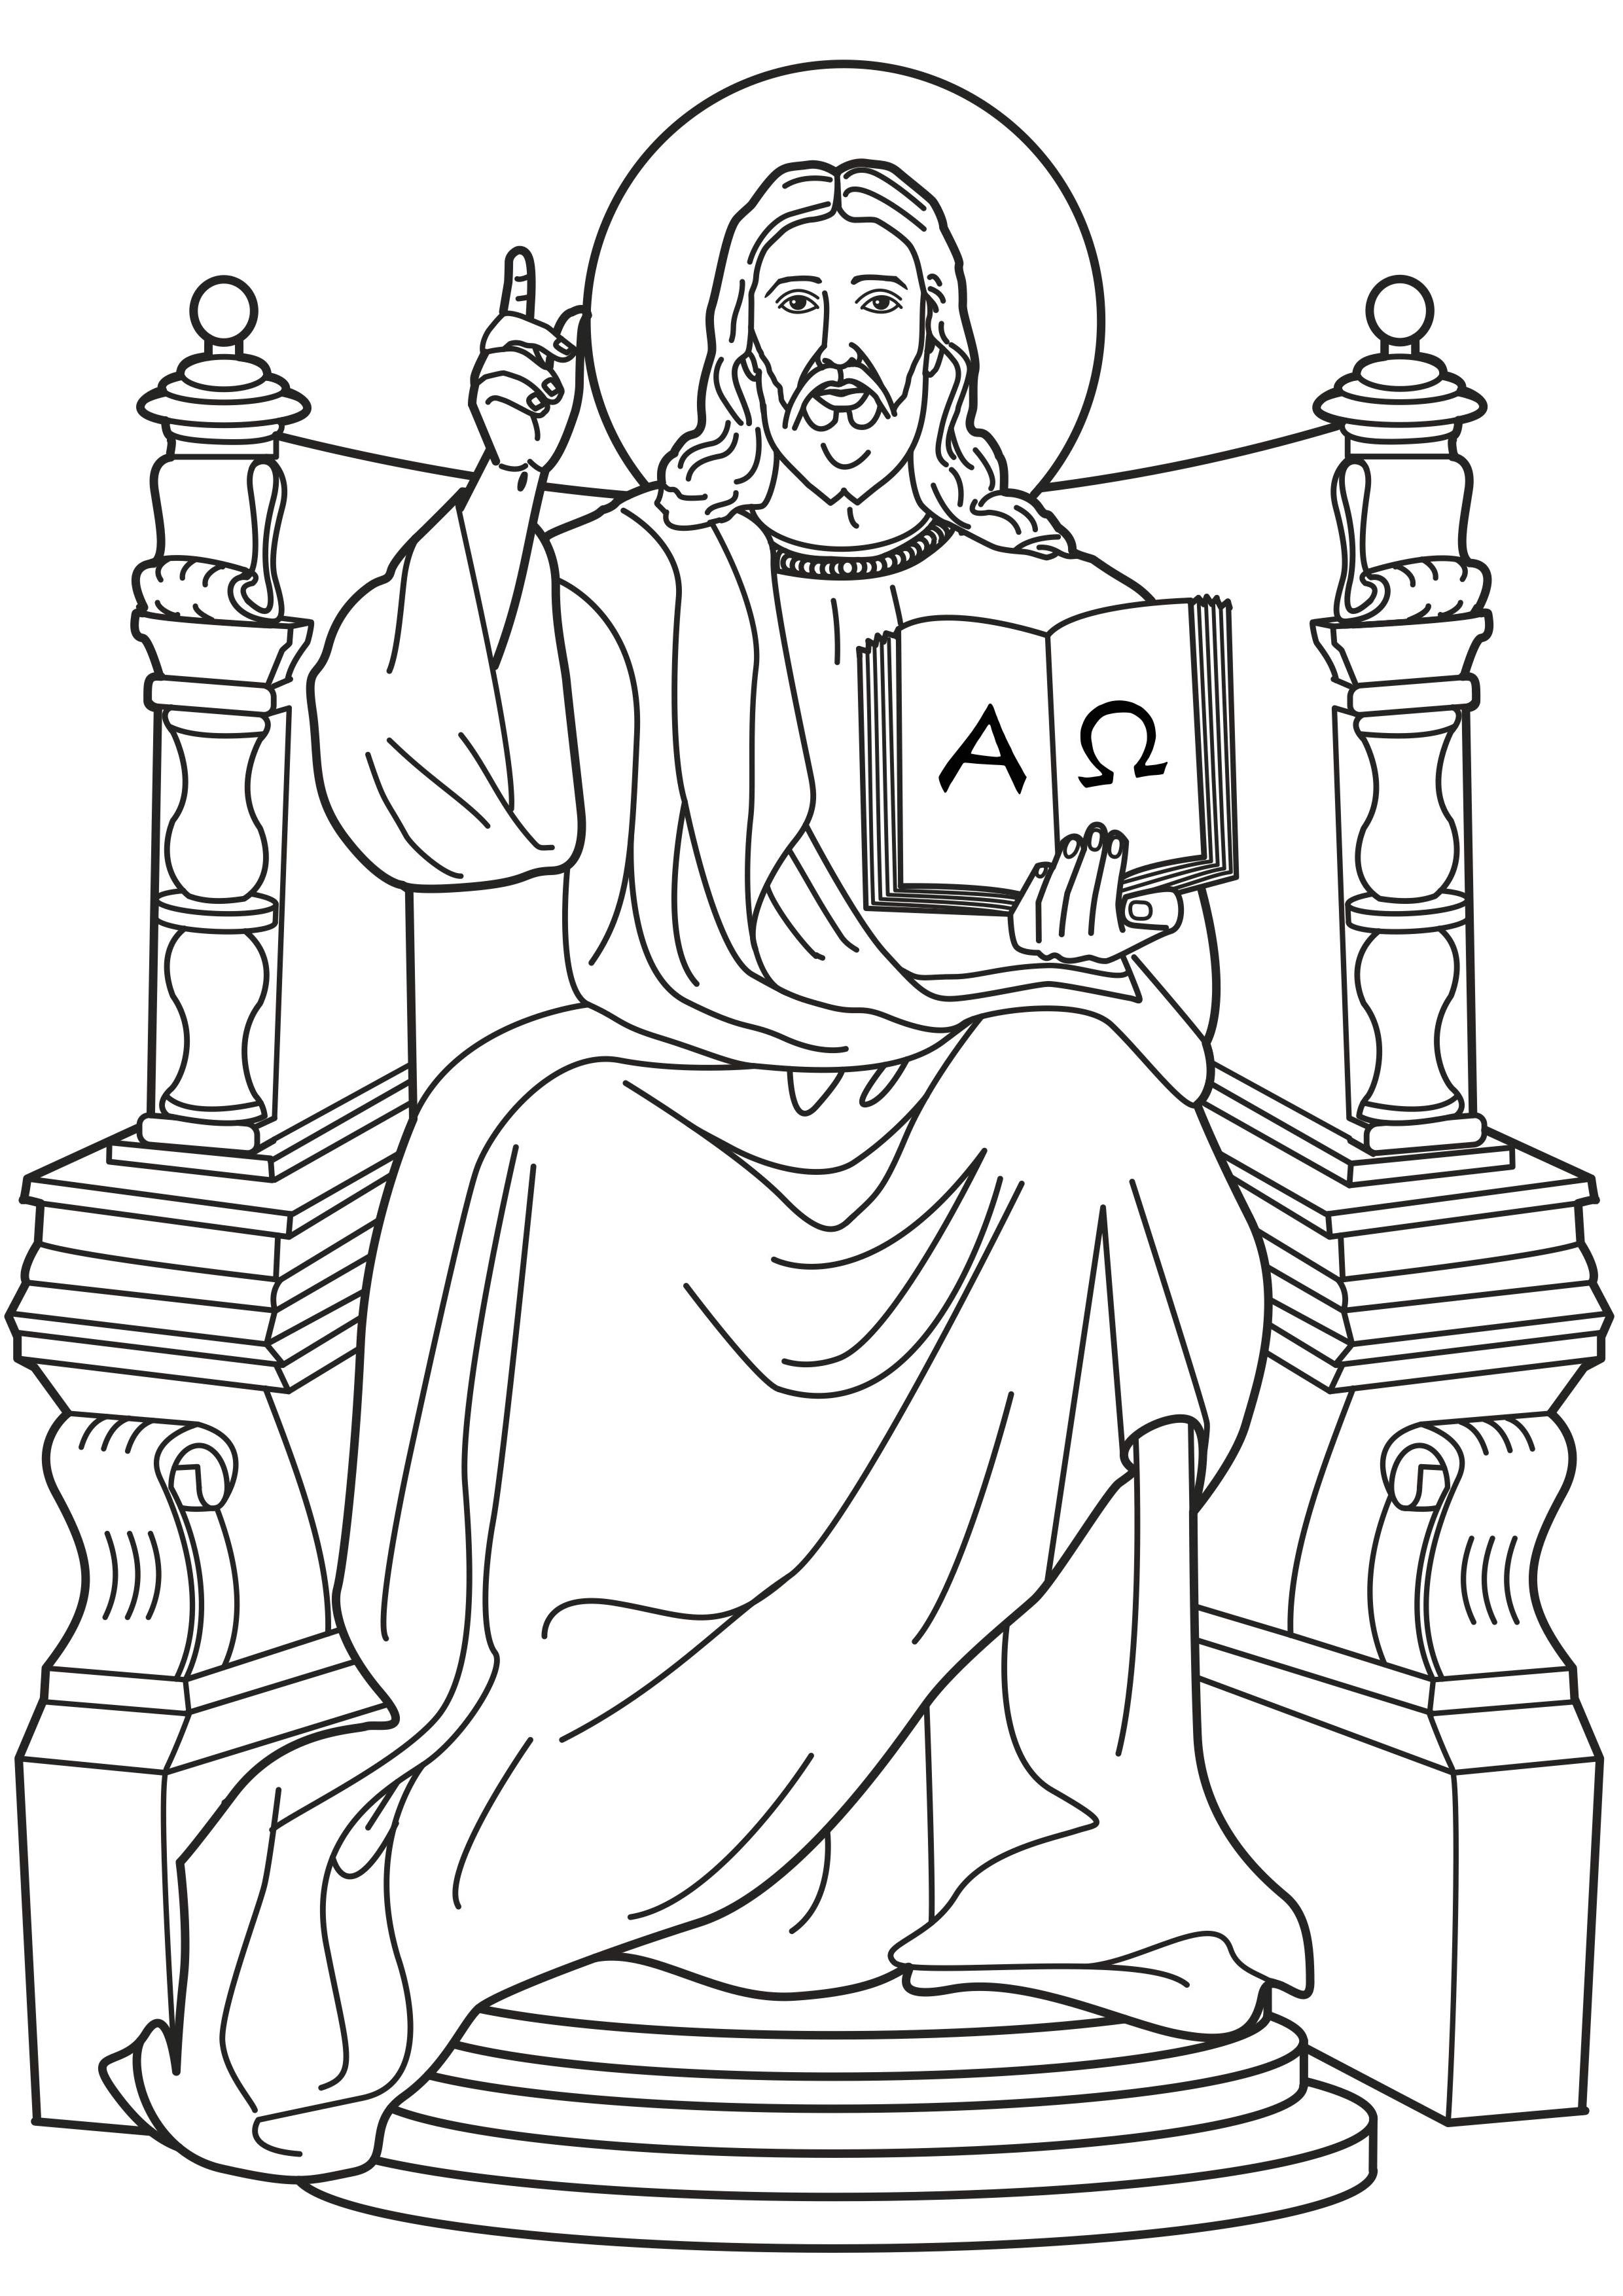 Pin By Deirdre On Catholic Coloring Pages For Kids To Colour Jesus Coloring Pages Christ The King Catholic Coloring